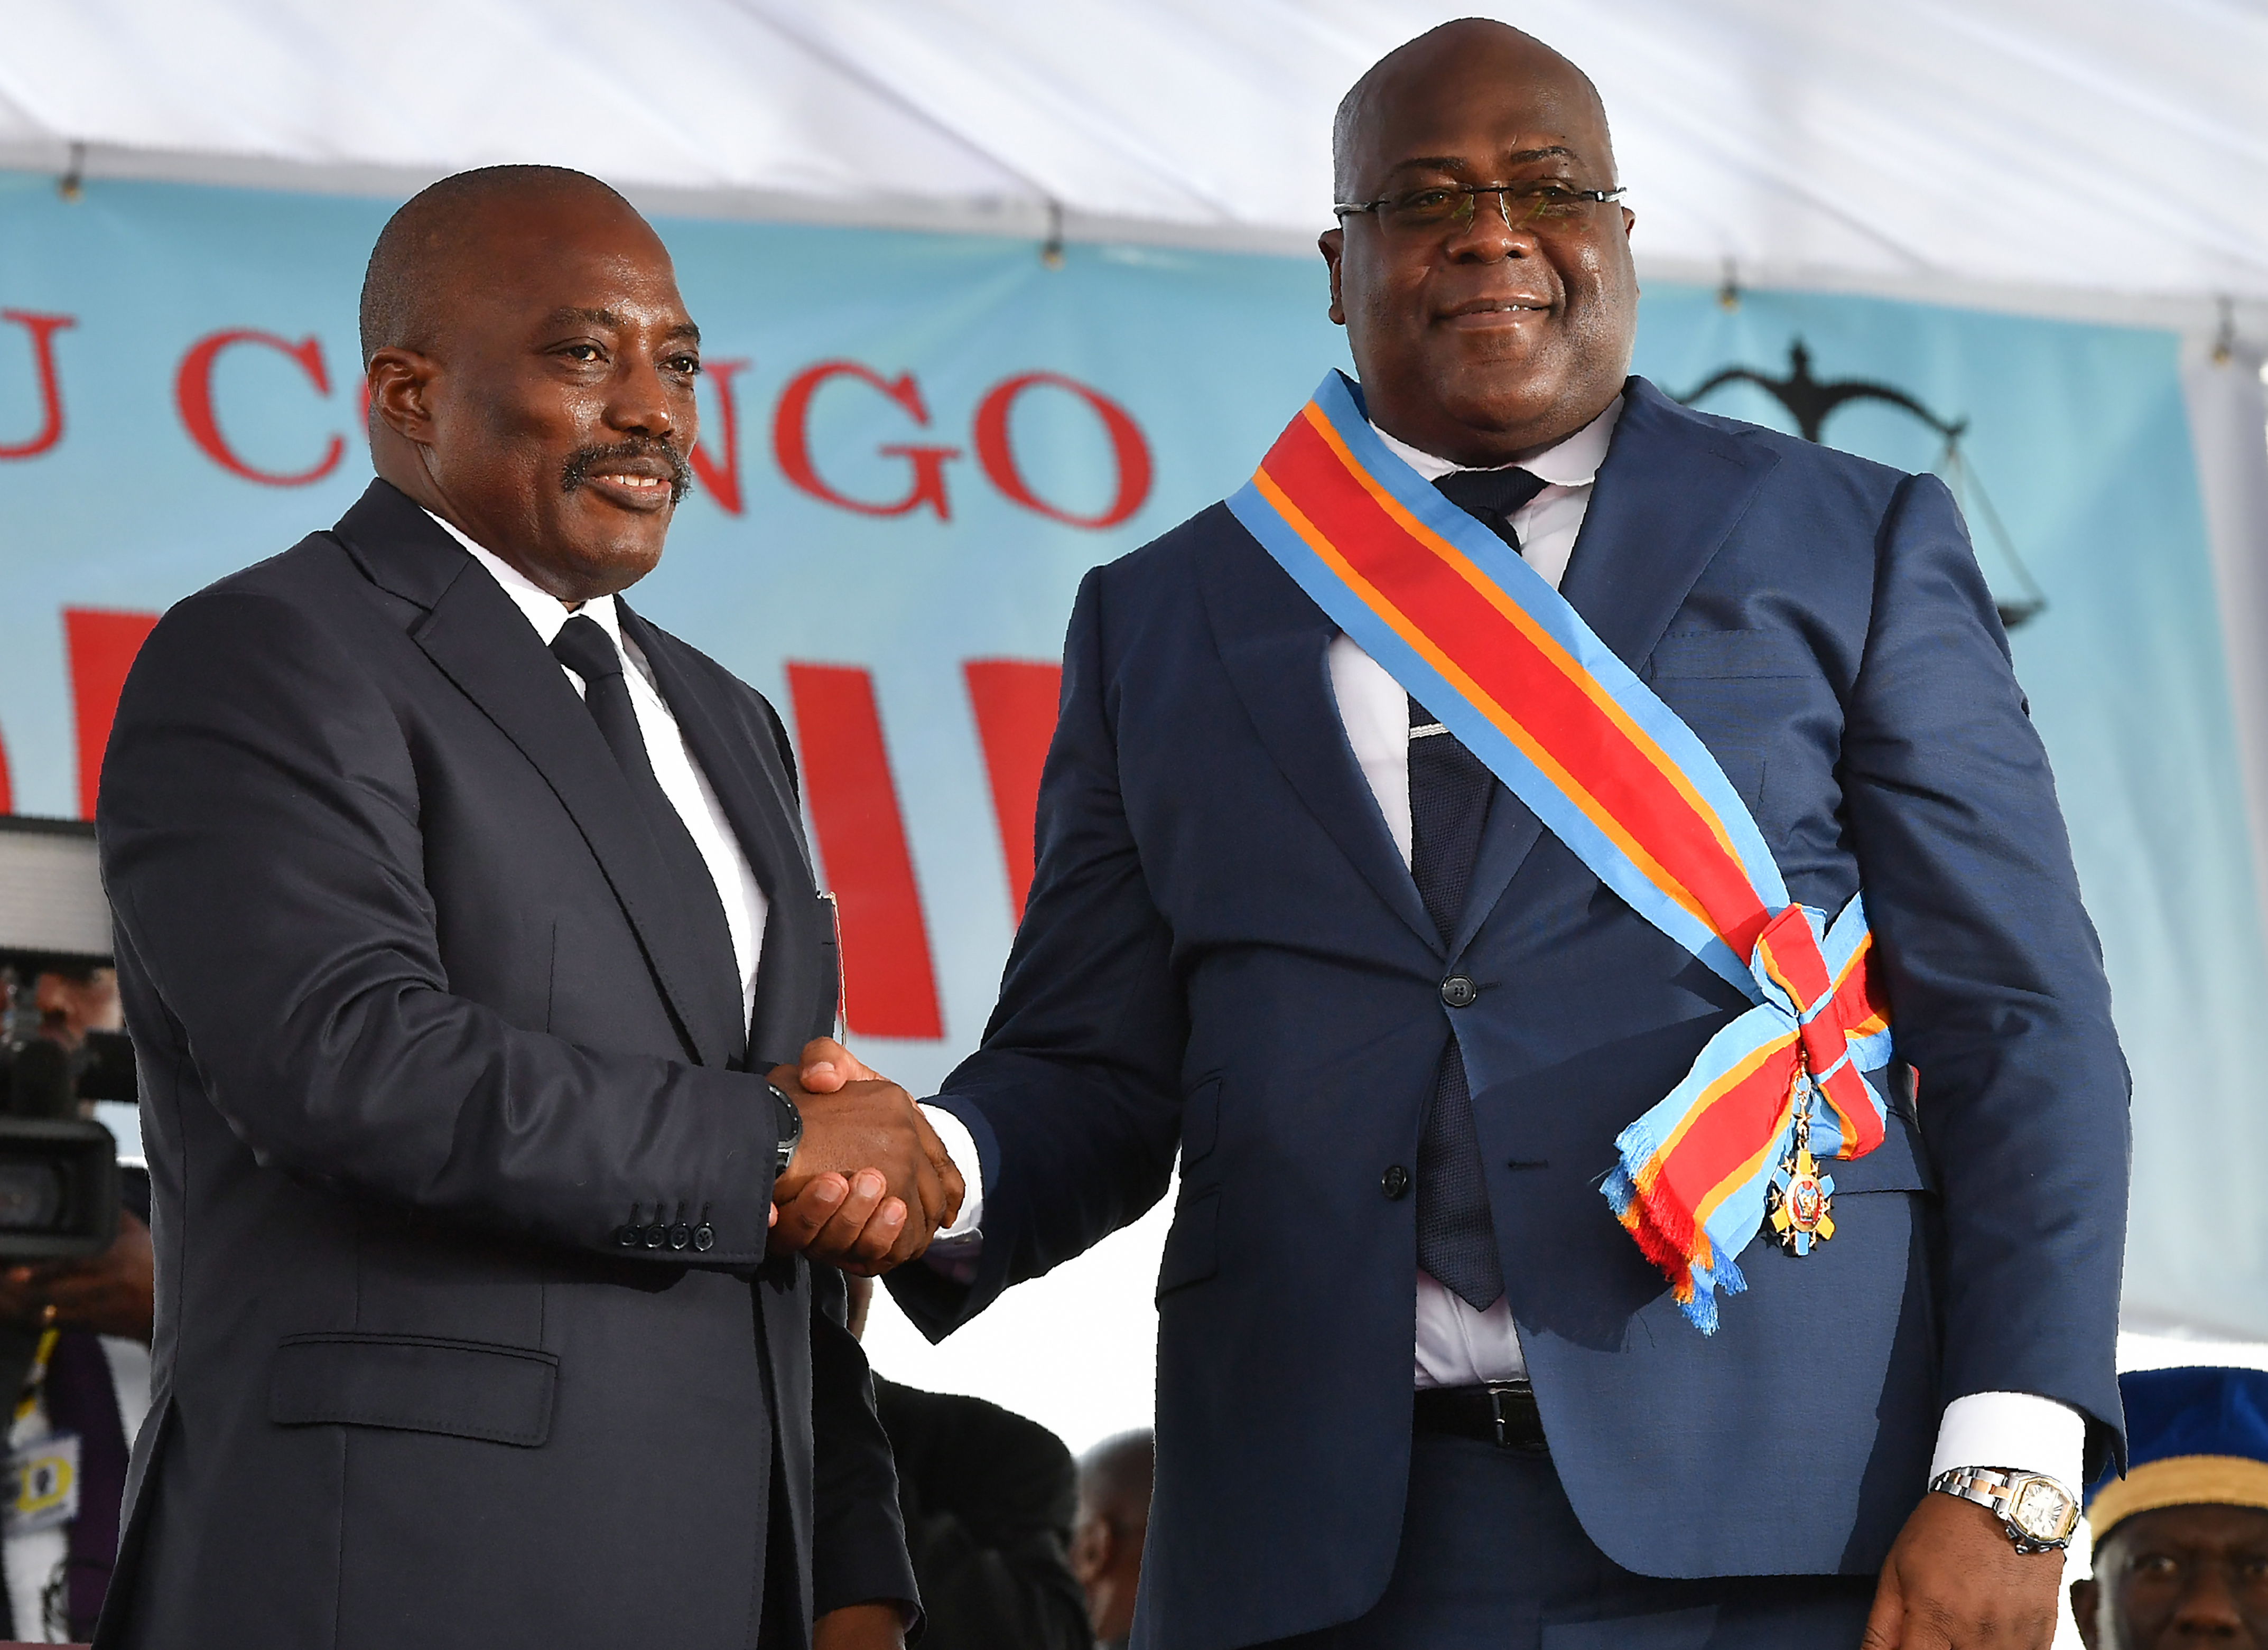 Near-miss for democracy in DRC